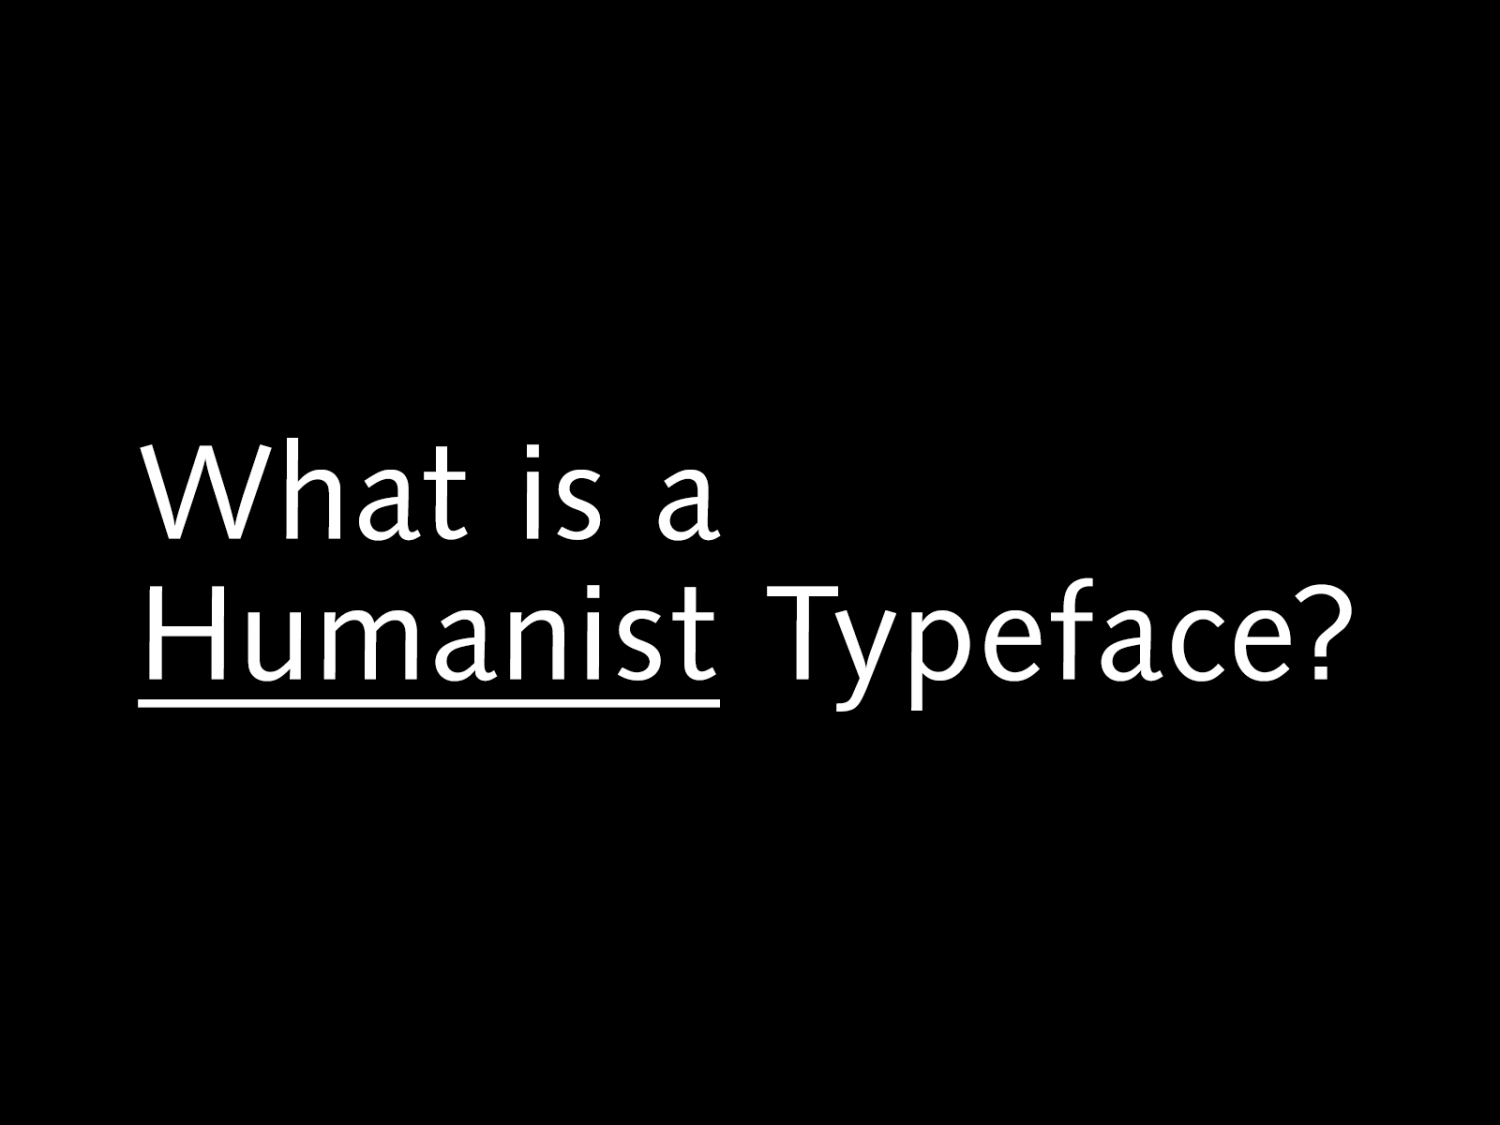 What is a Humanist Typeface?